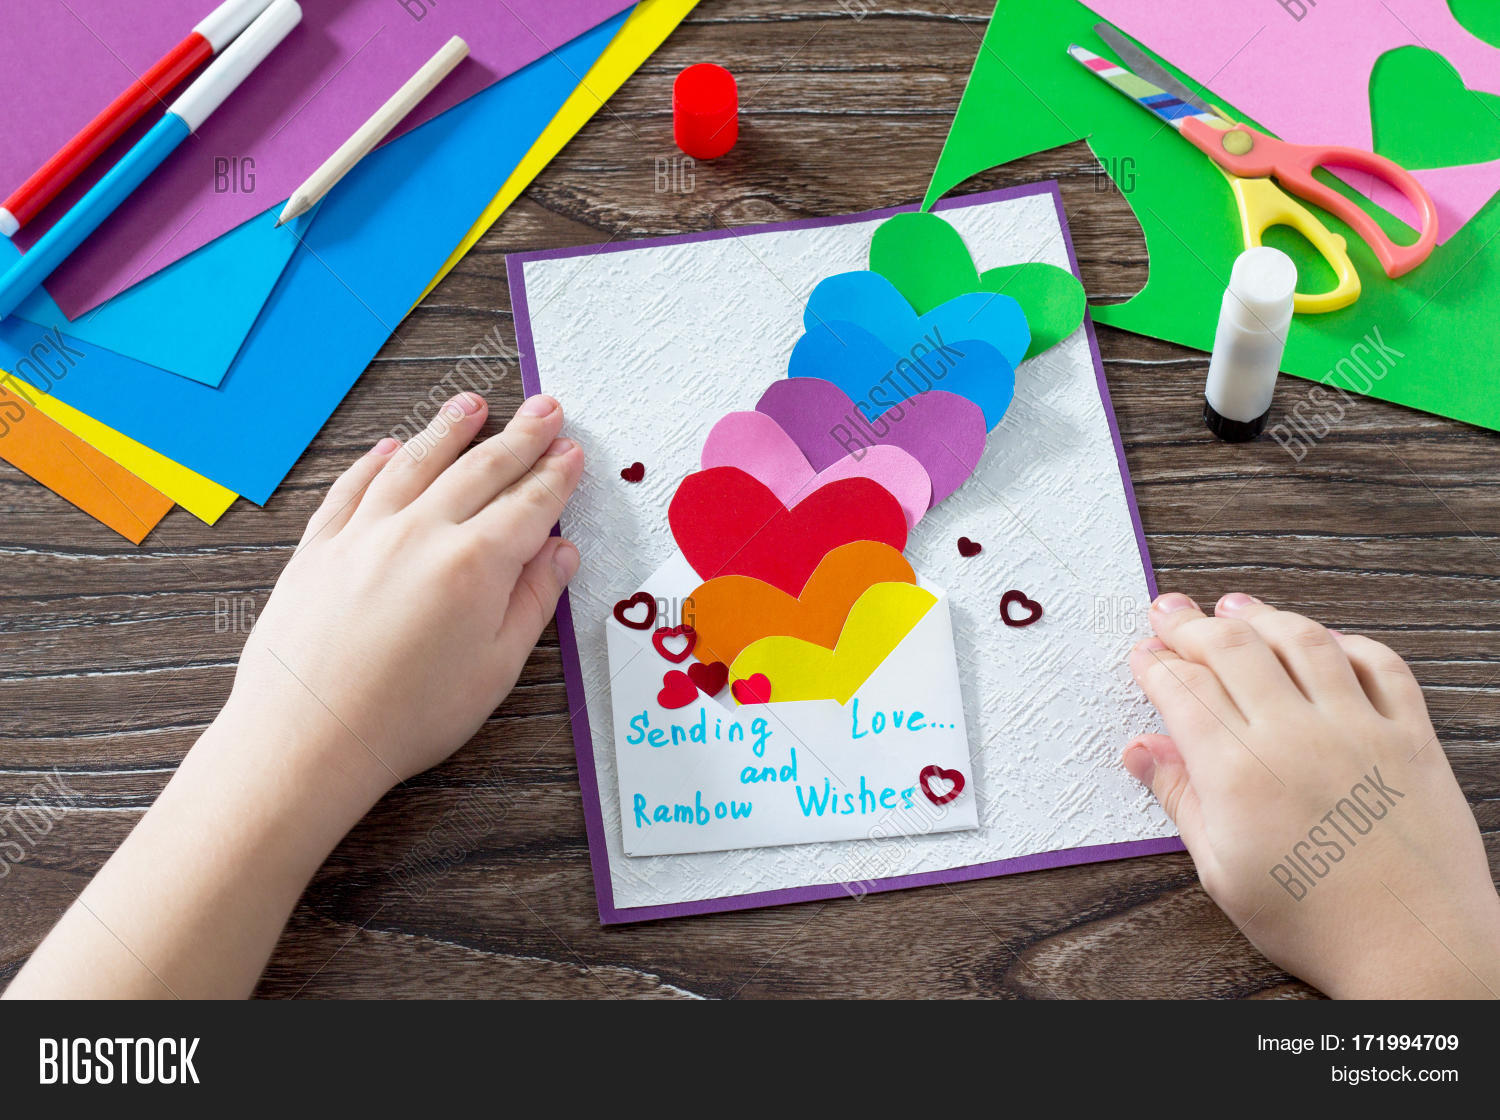 Birthday Mothers Day Image Photo Free Trial Bigstock